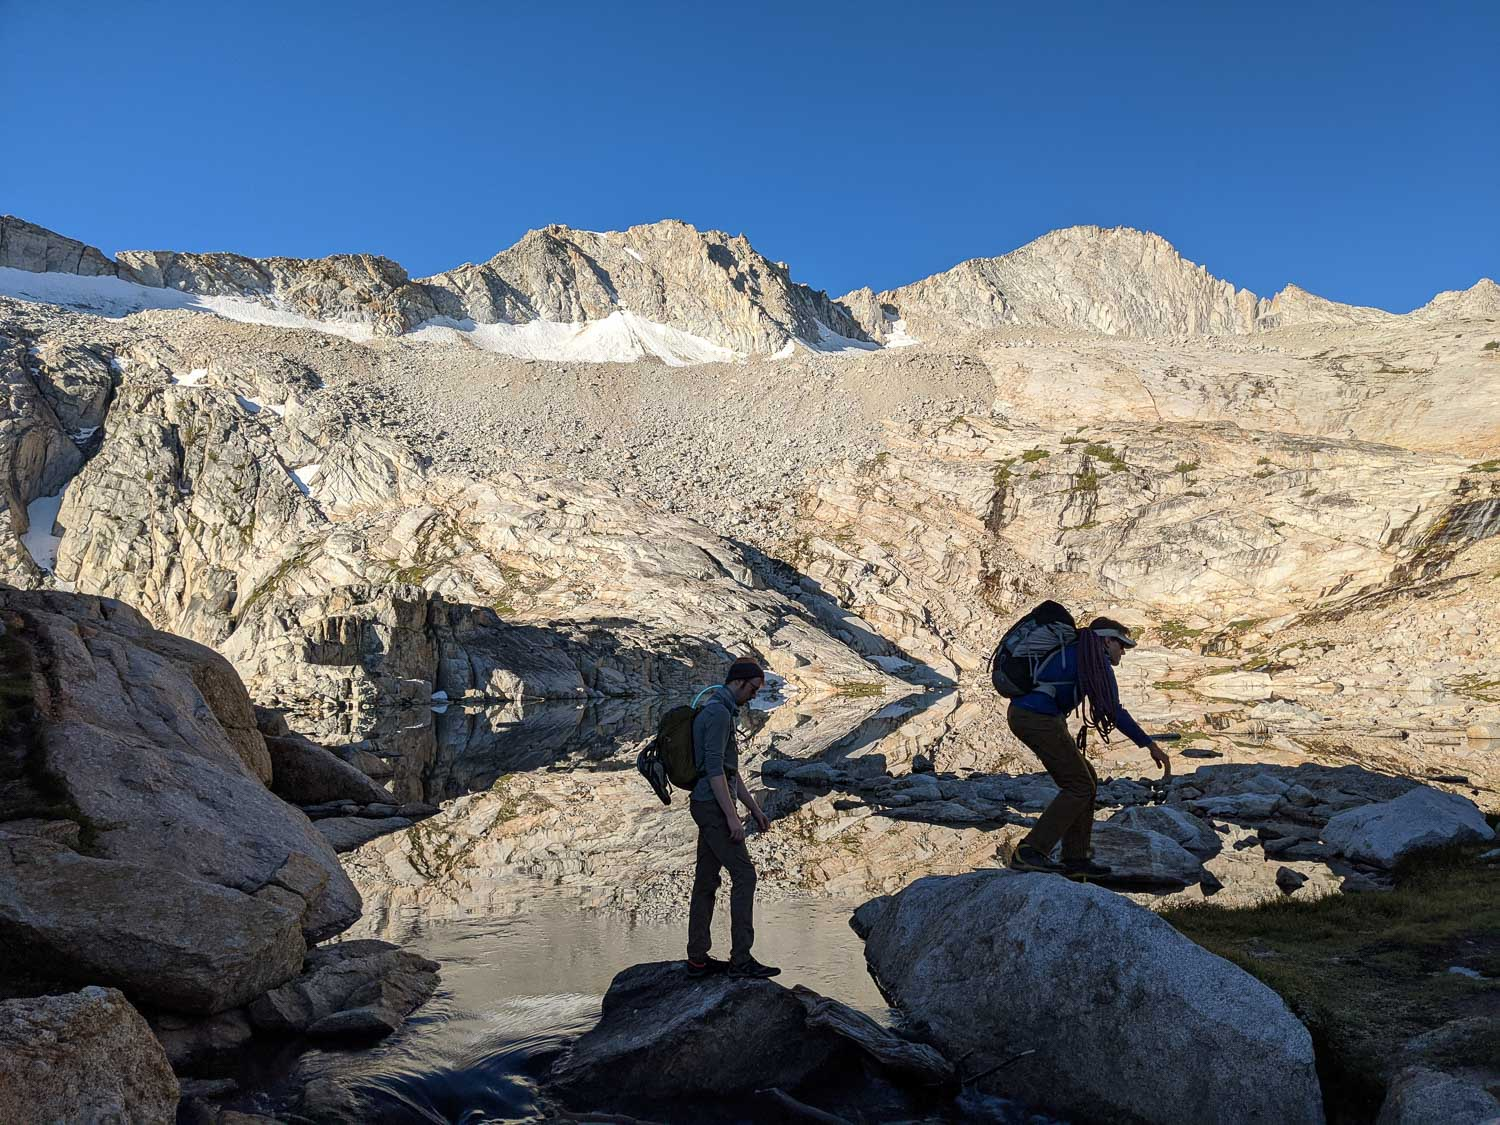 Approaching Mount Conness